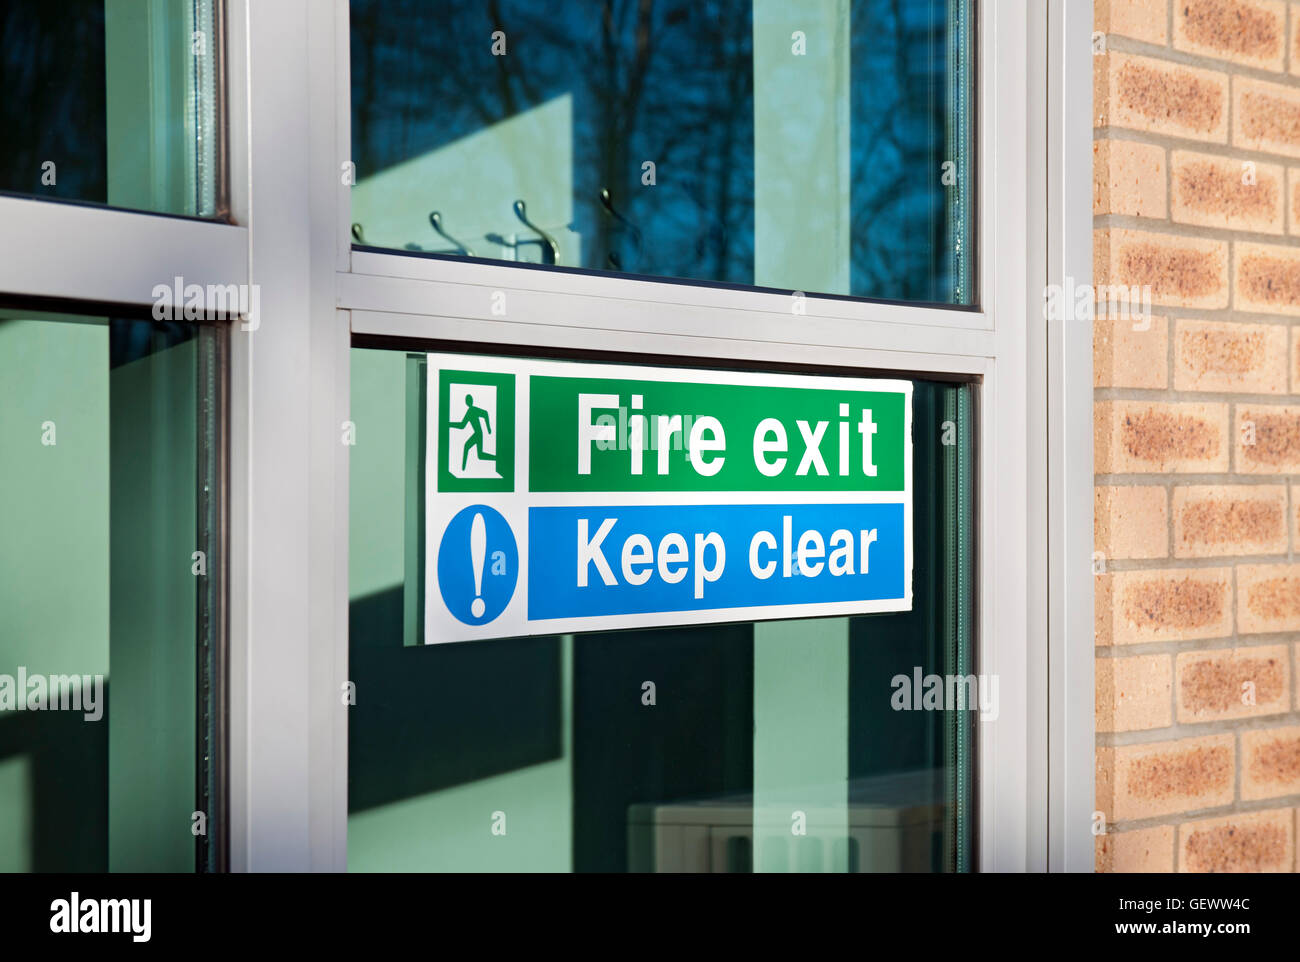 Fire exit and keep clear signs on glass door. Stock Photo